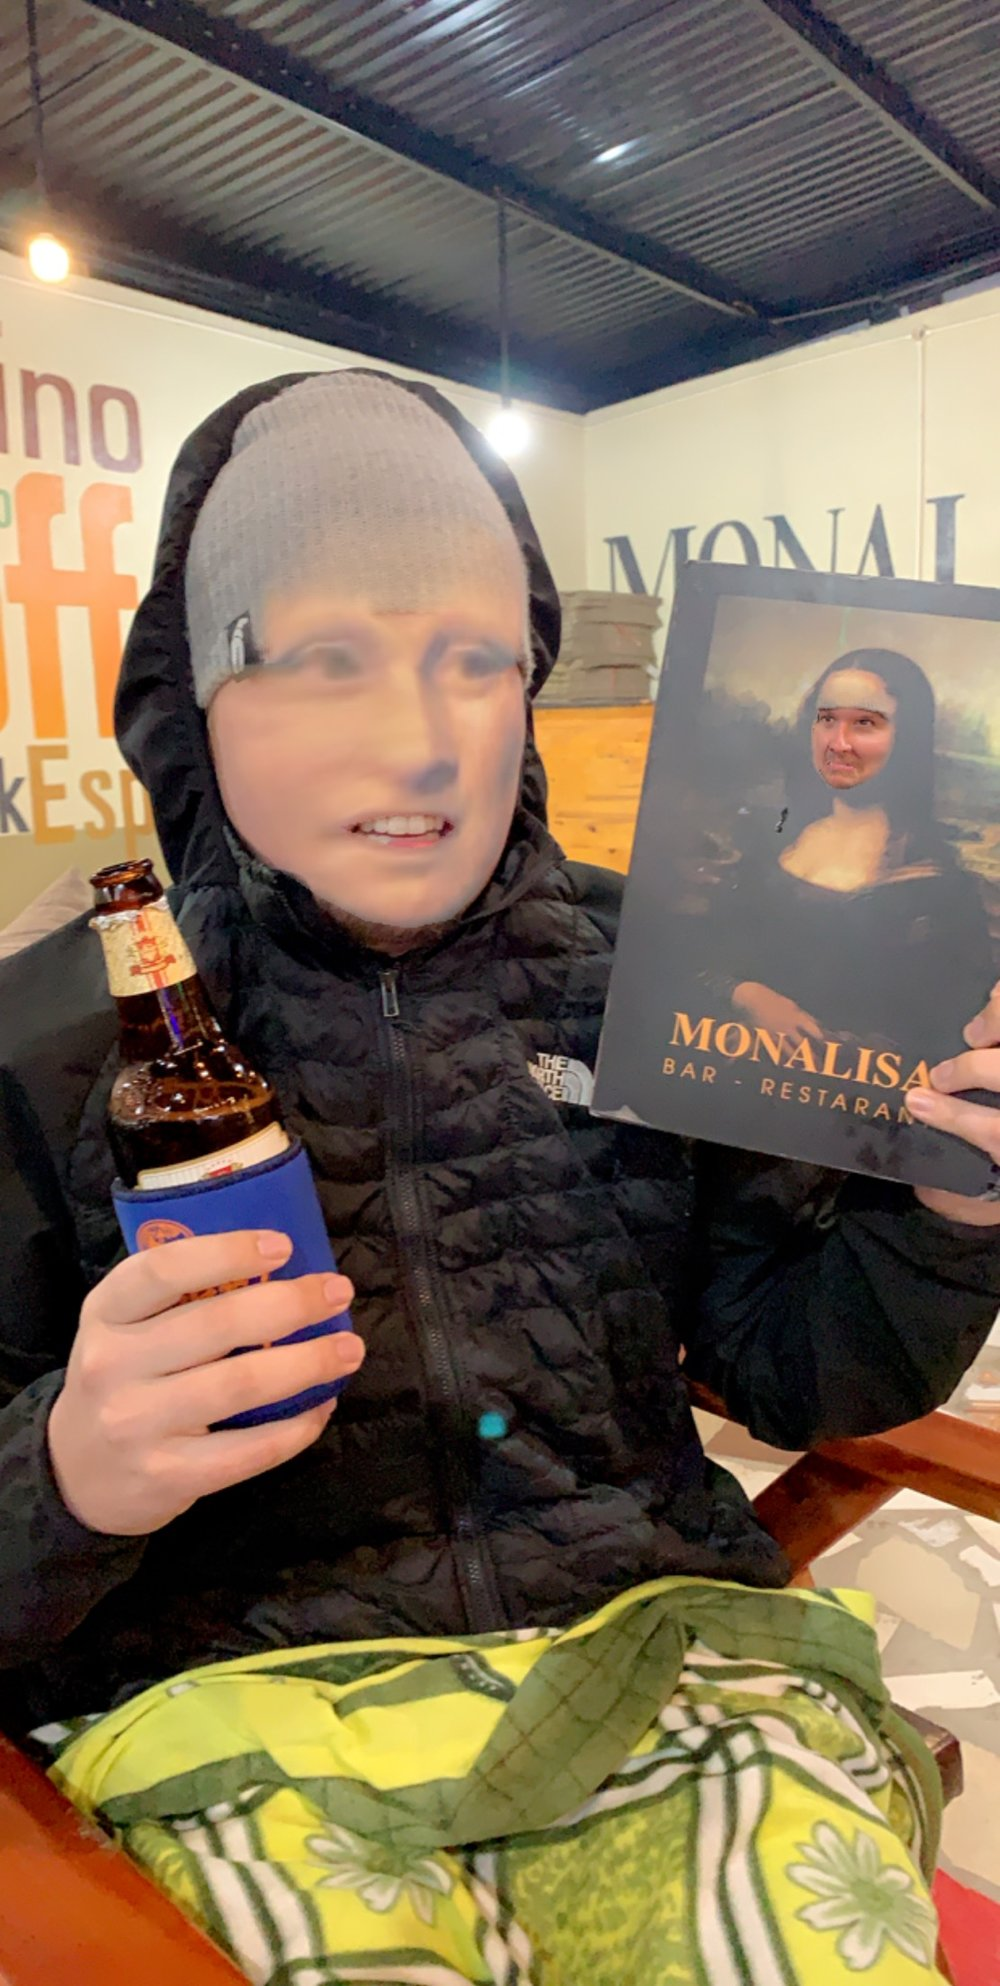 Actual photo of me at Monalisa.